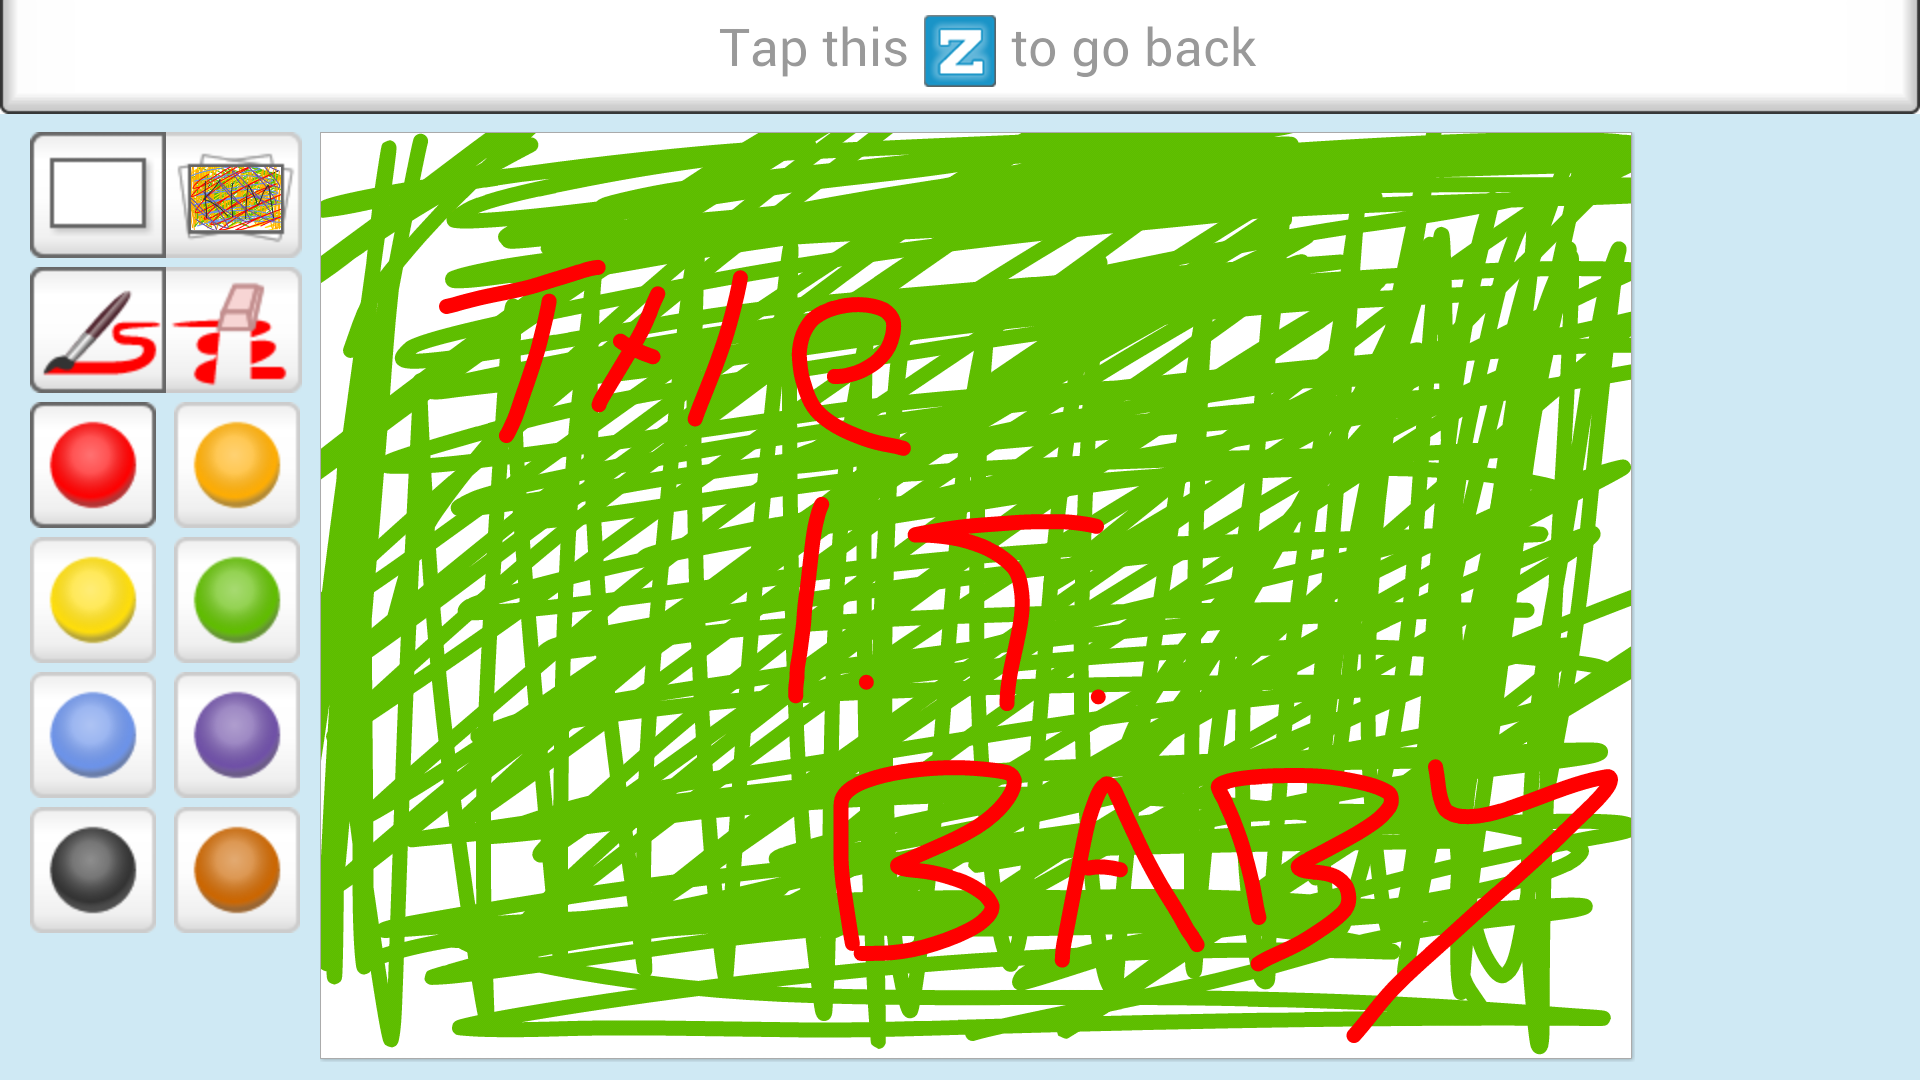 theITbaby